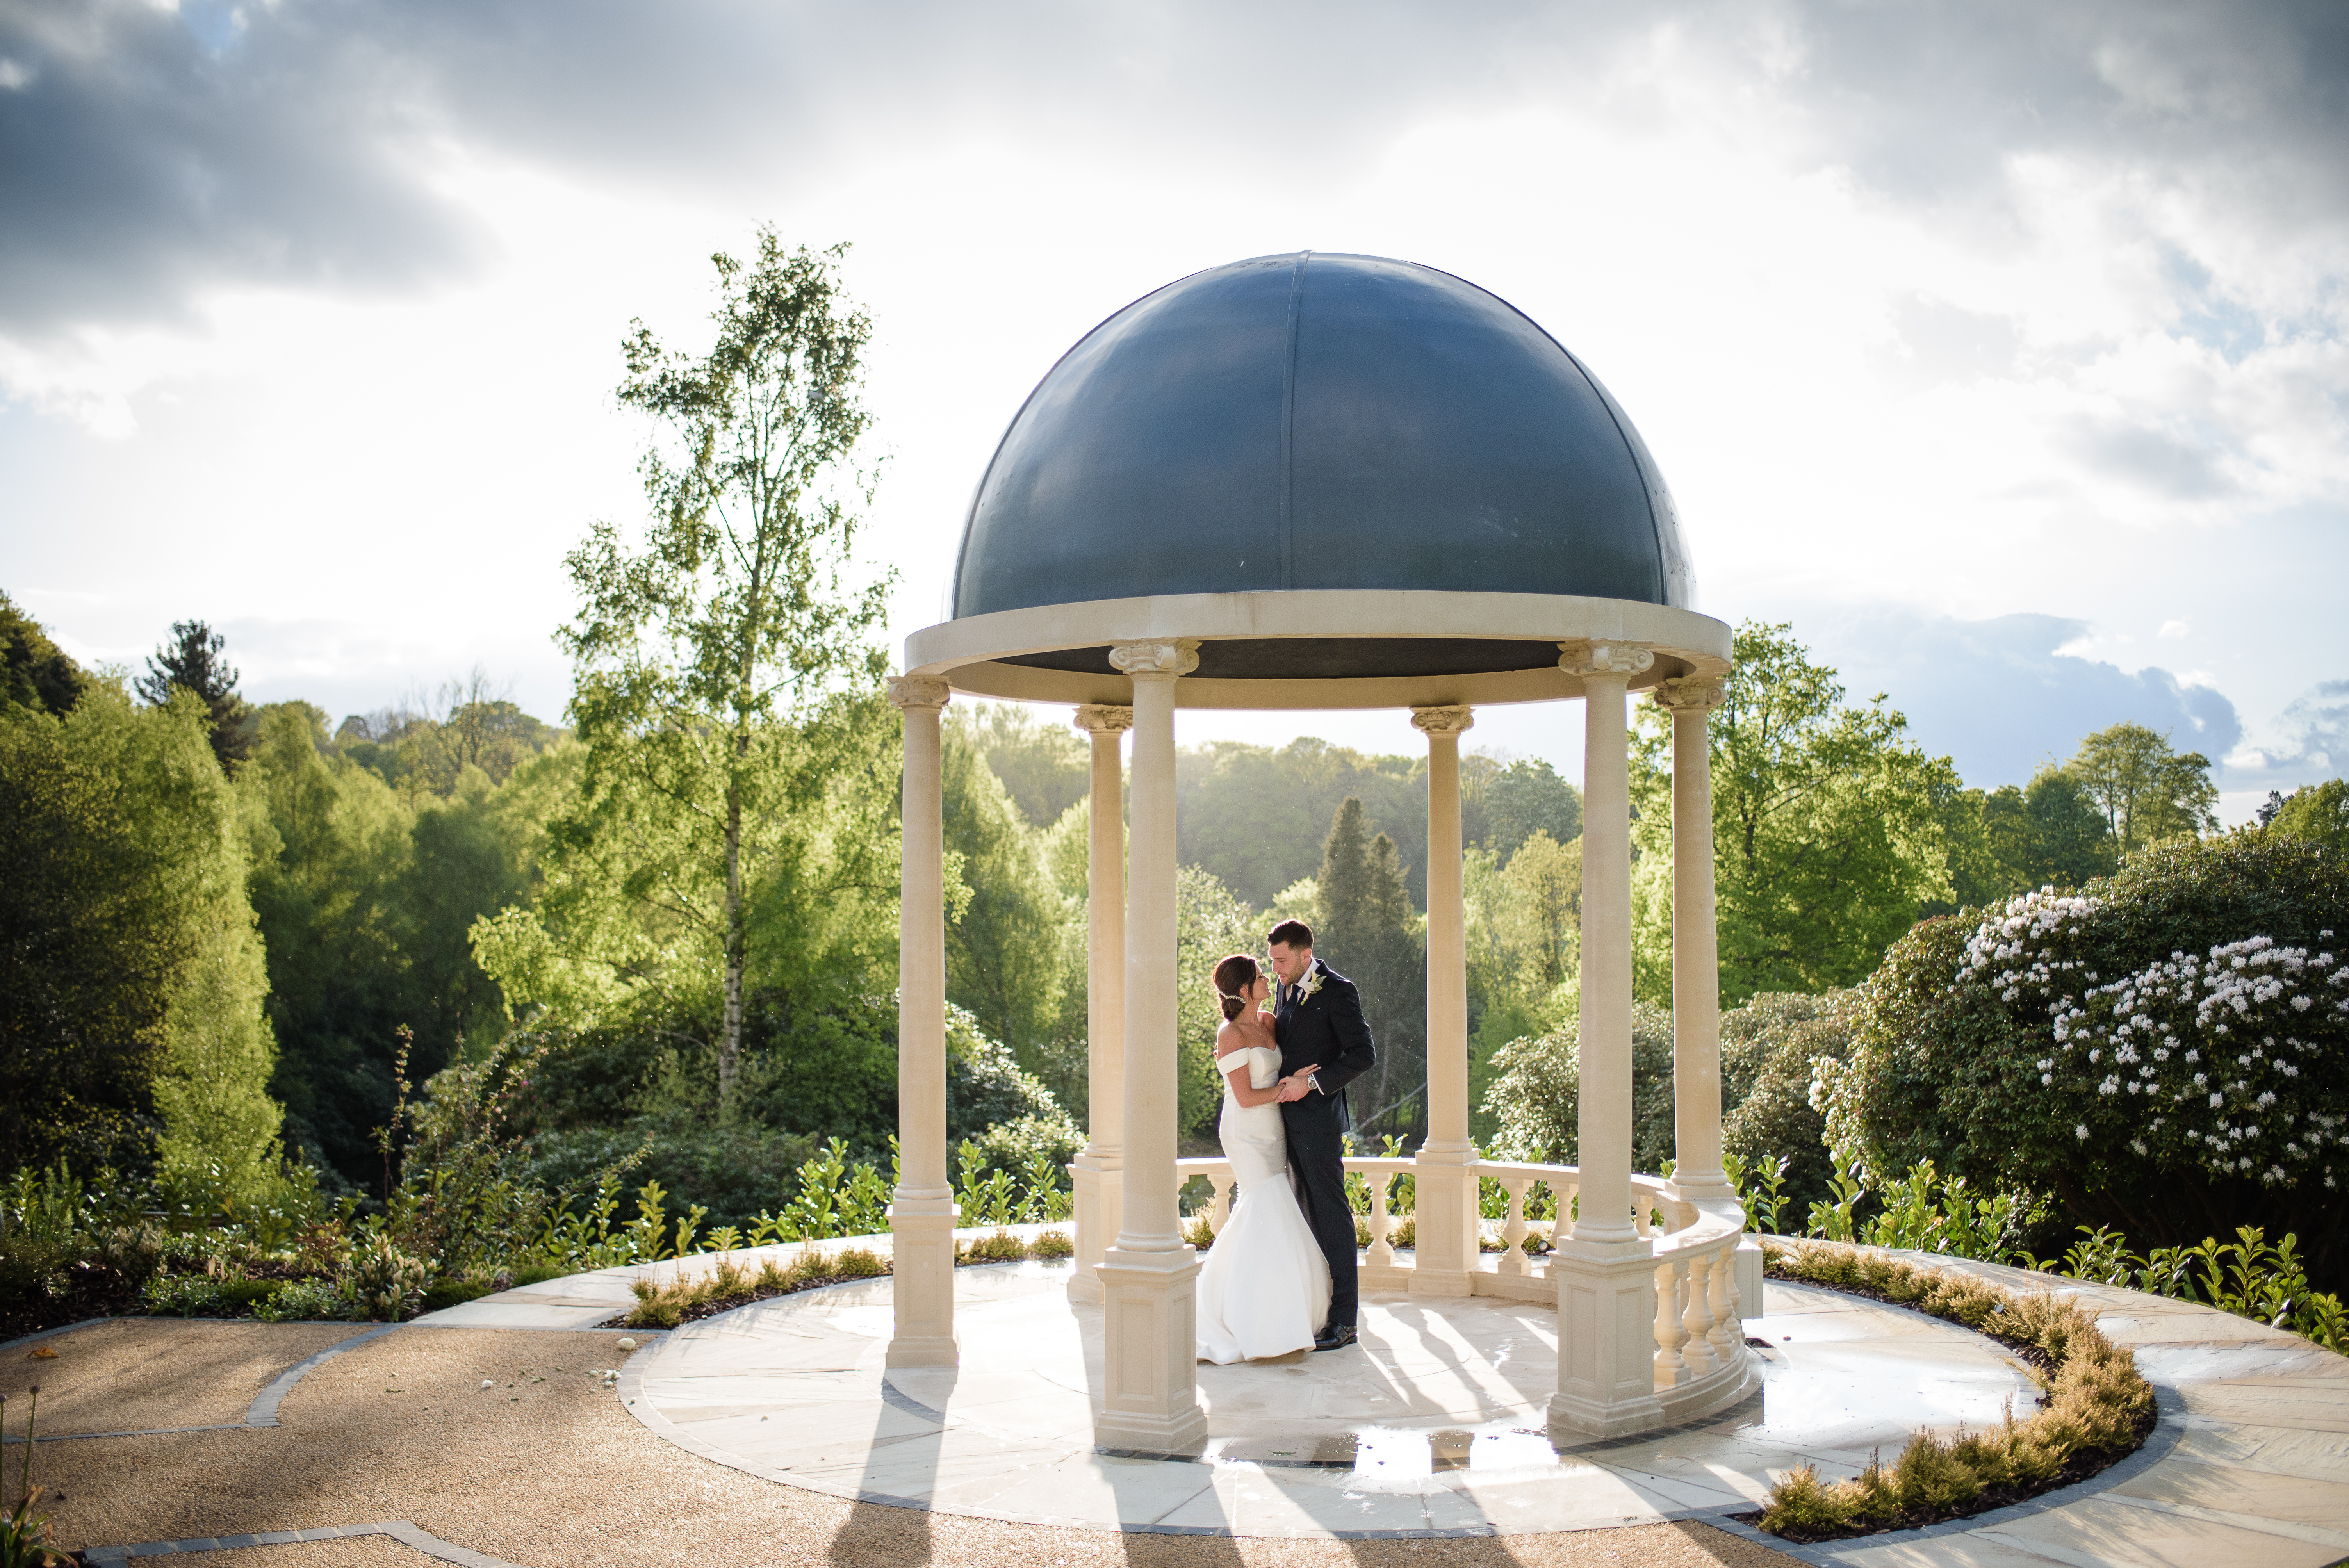 Sun shines on a bride and groom through a garden pavilion used as an outdoor wedding pagoda in the grounds of the spa hotel